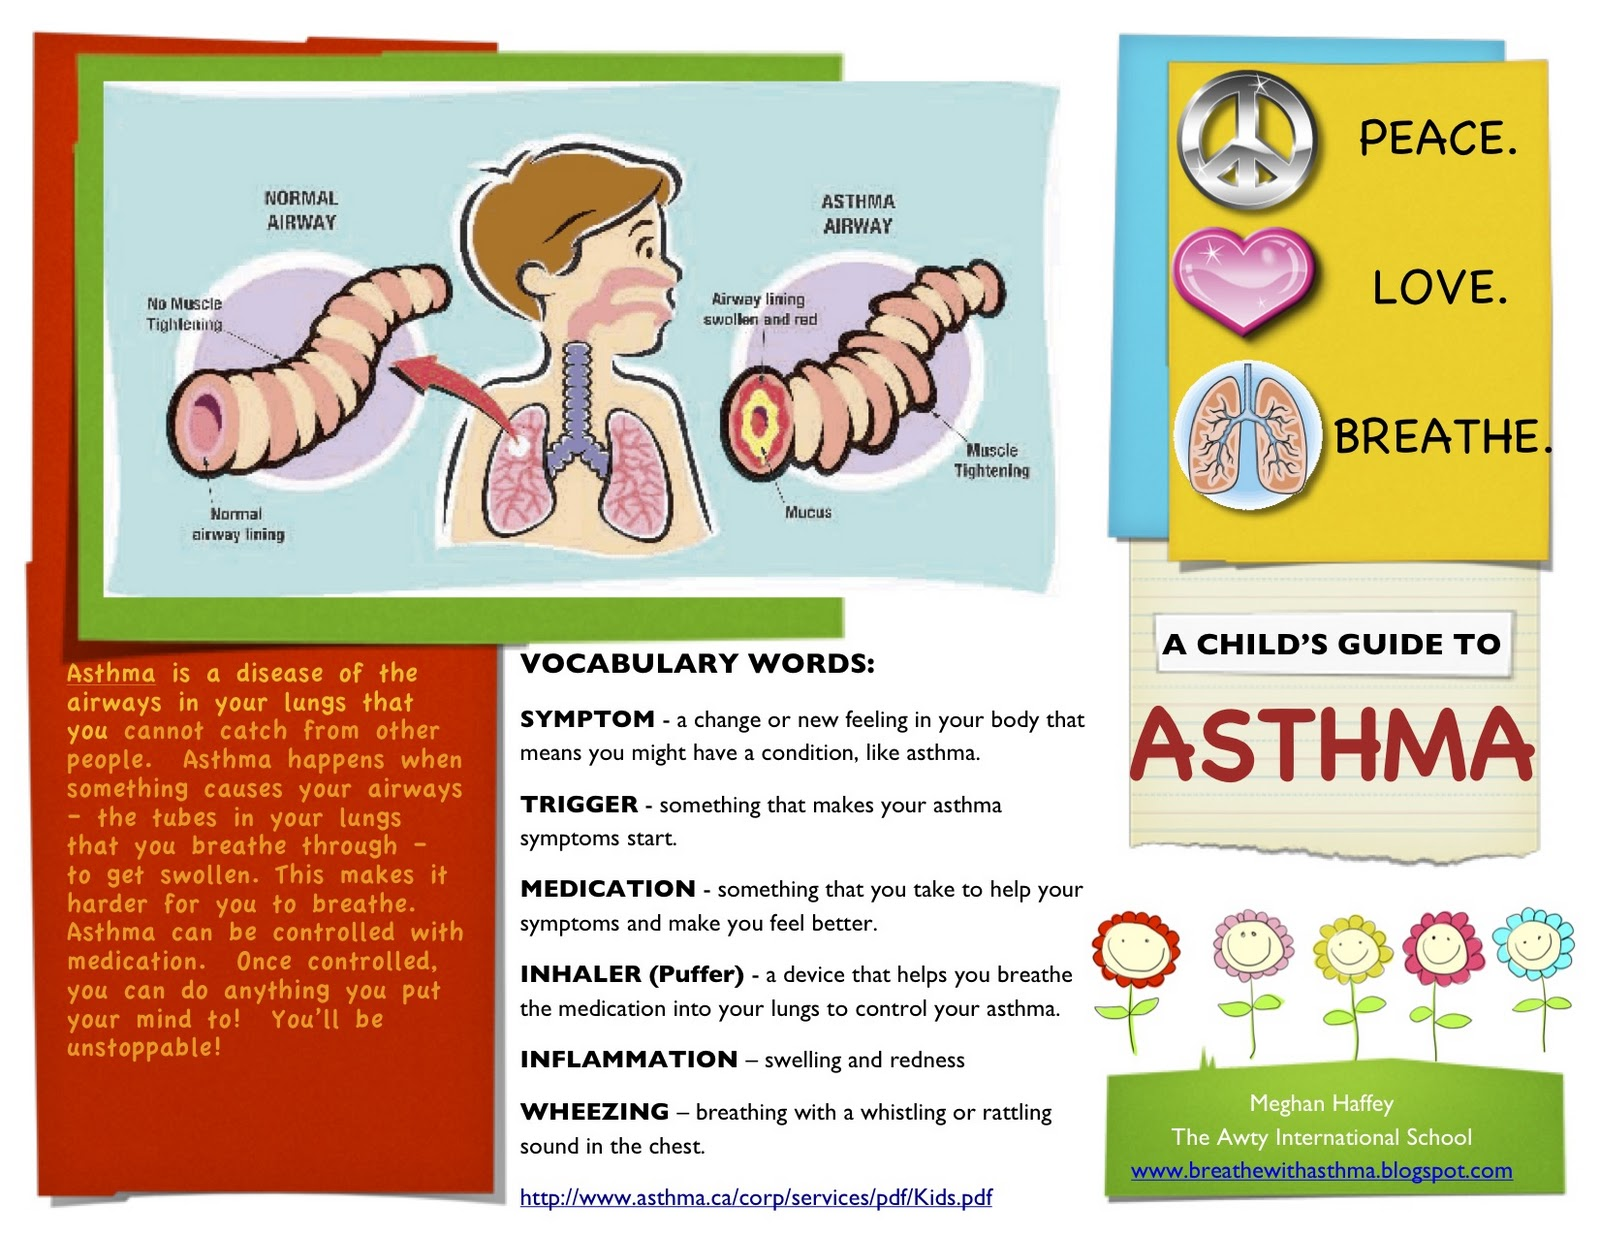 Asthma Awareness For Adults And Children A Childs Guide To - Asthma brochure template